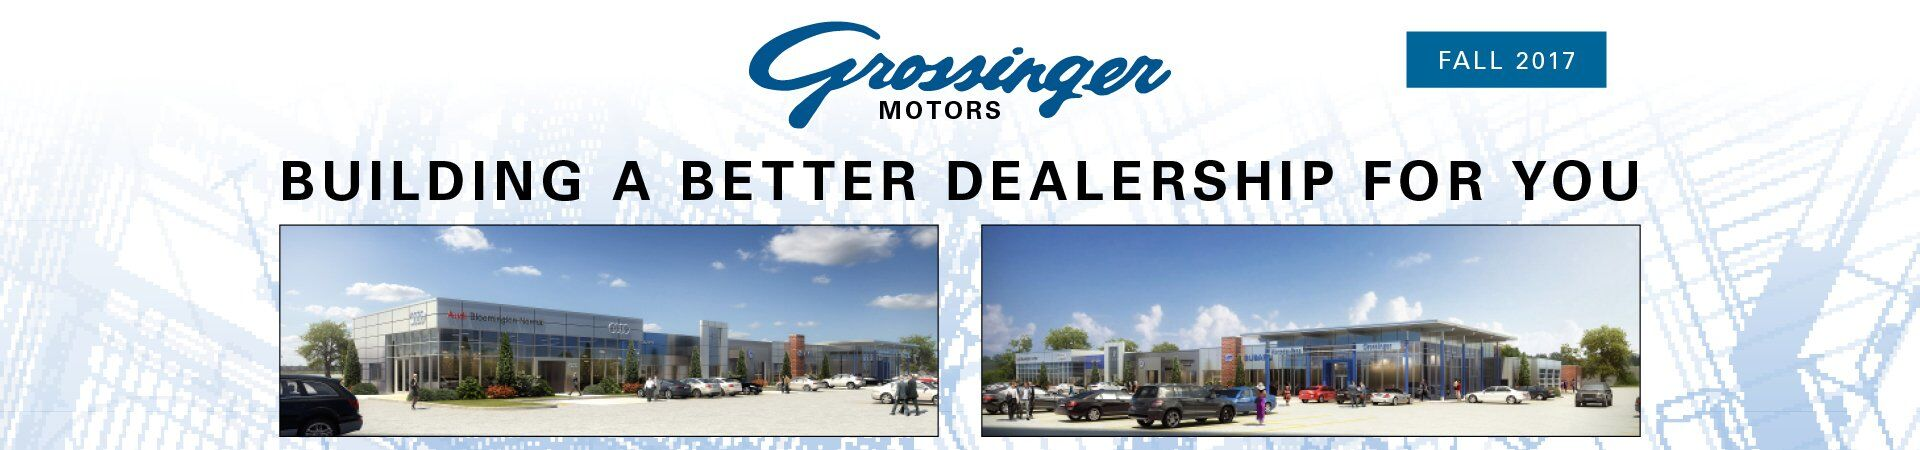 Building a better dealership